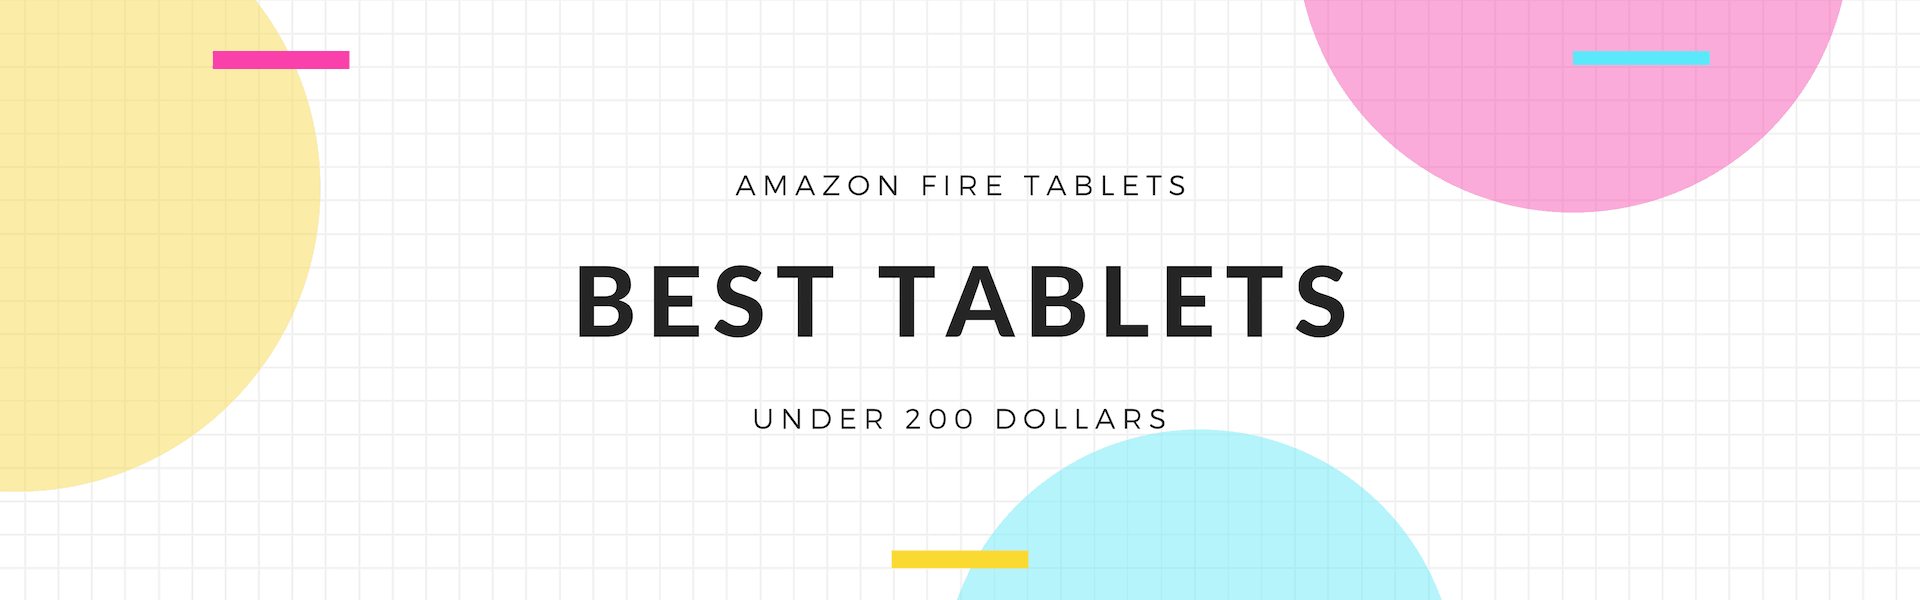 best amazon fire tablets under 200 for kids and mom